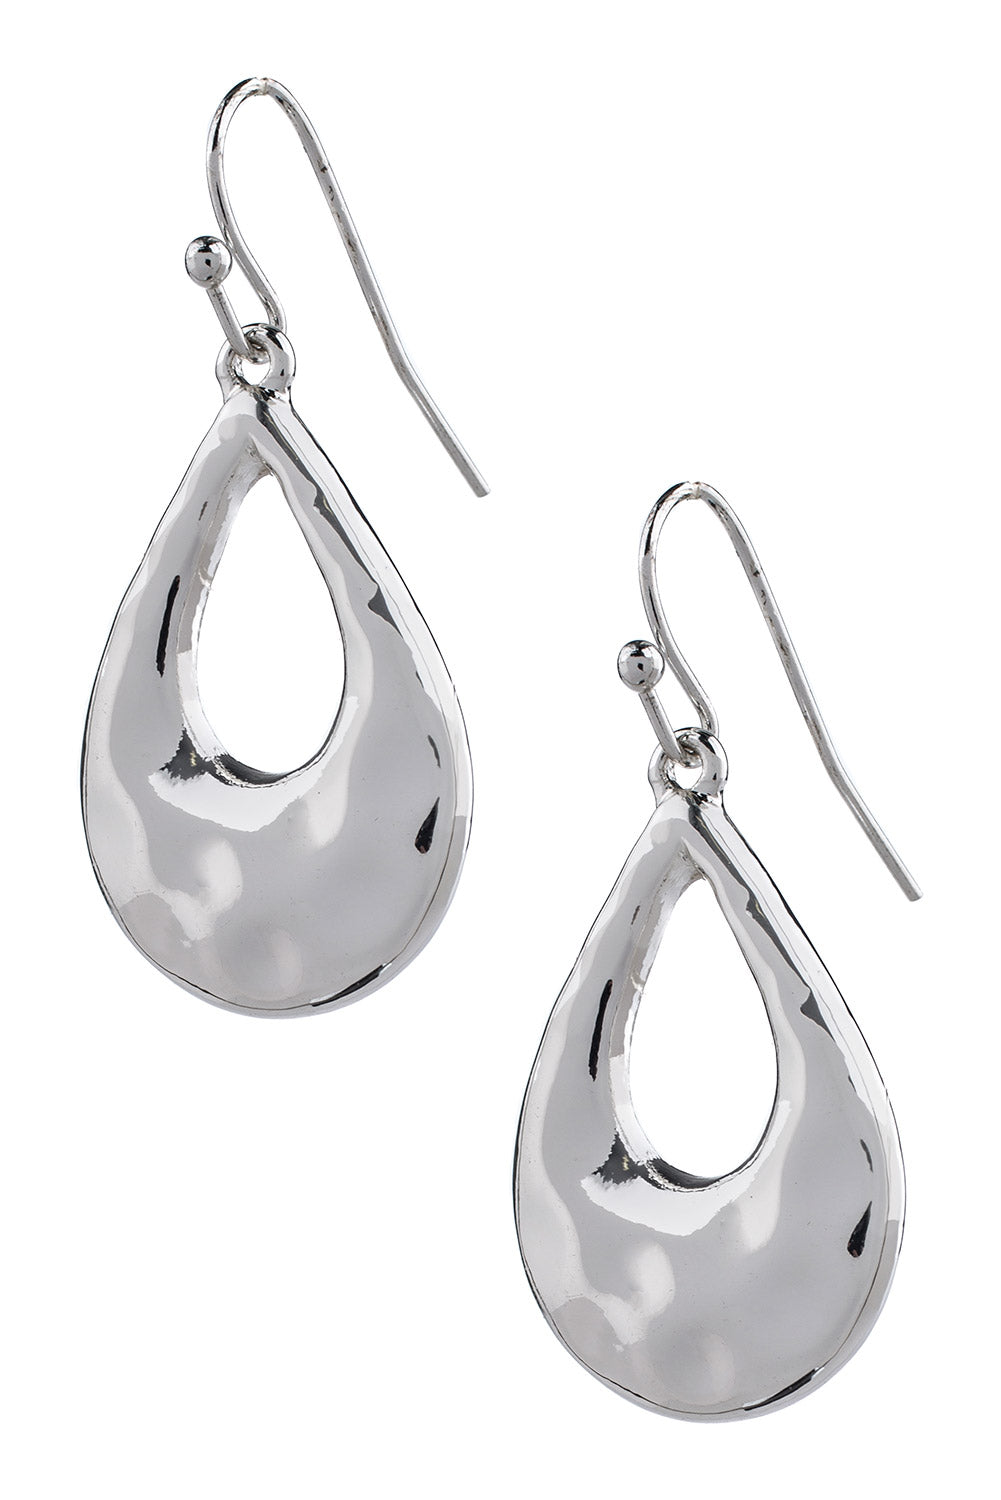 Type 4 Sleek and Smooth Earrings